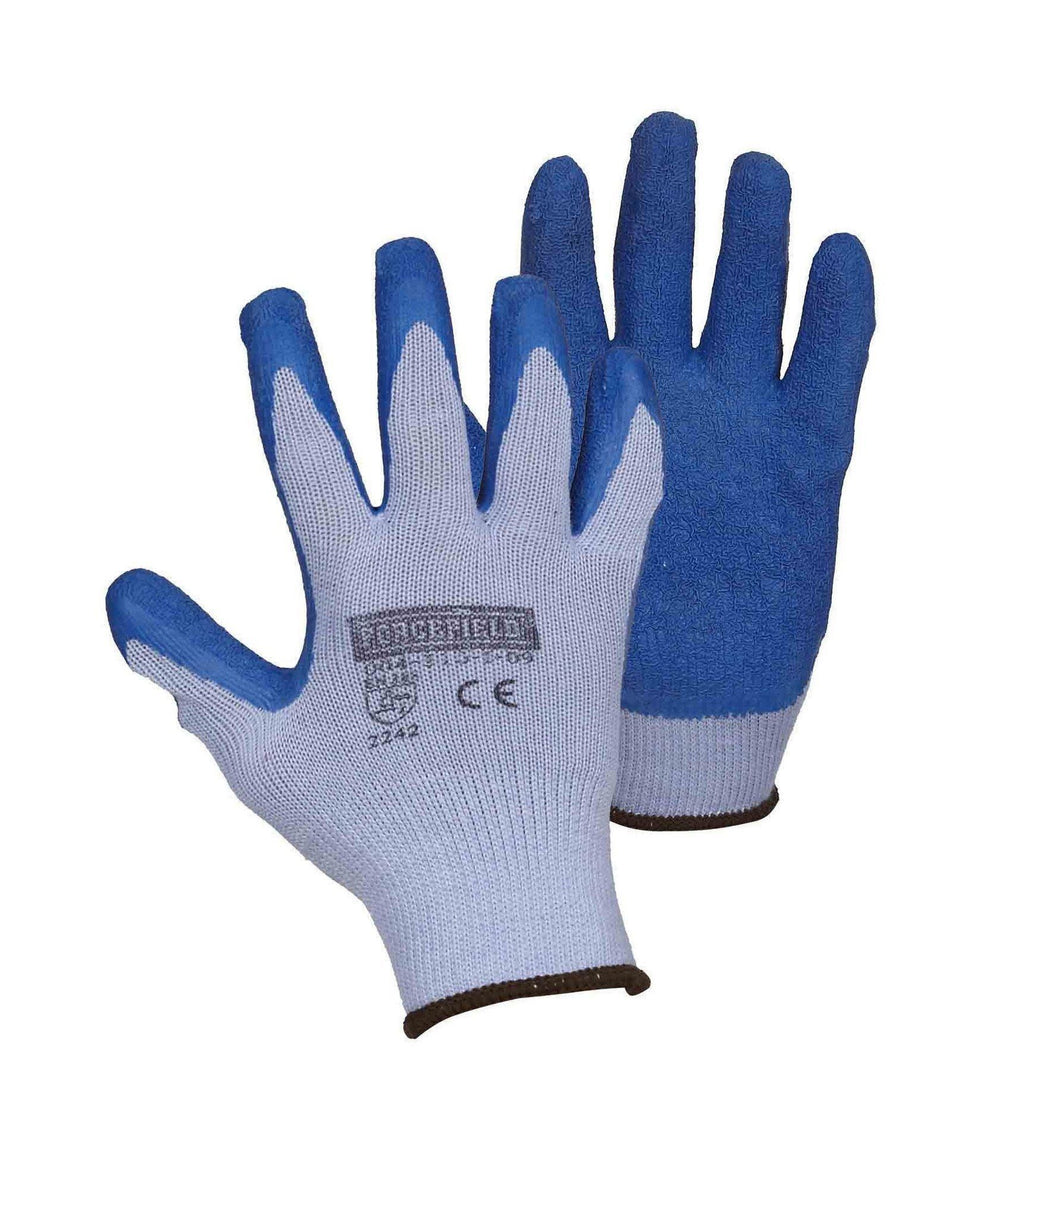 String Knit Work Gloves Palm Coated with Blue Crinkle Latex - Hi Vis Safety